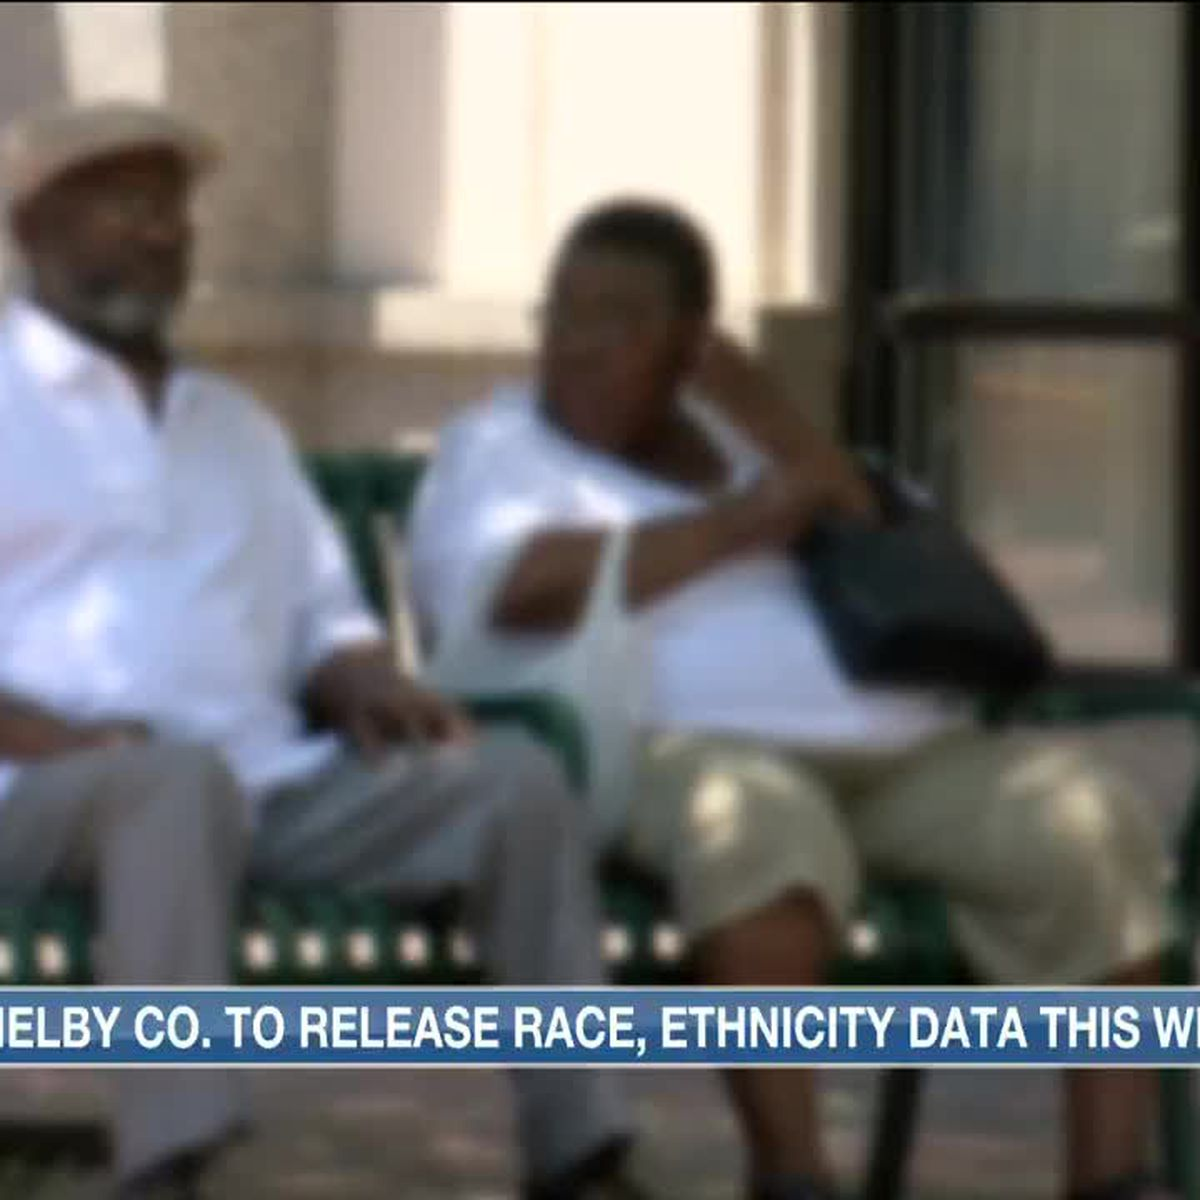 Shelby County to release race and ethnicity data on COVID-19 cases this Week